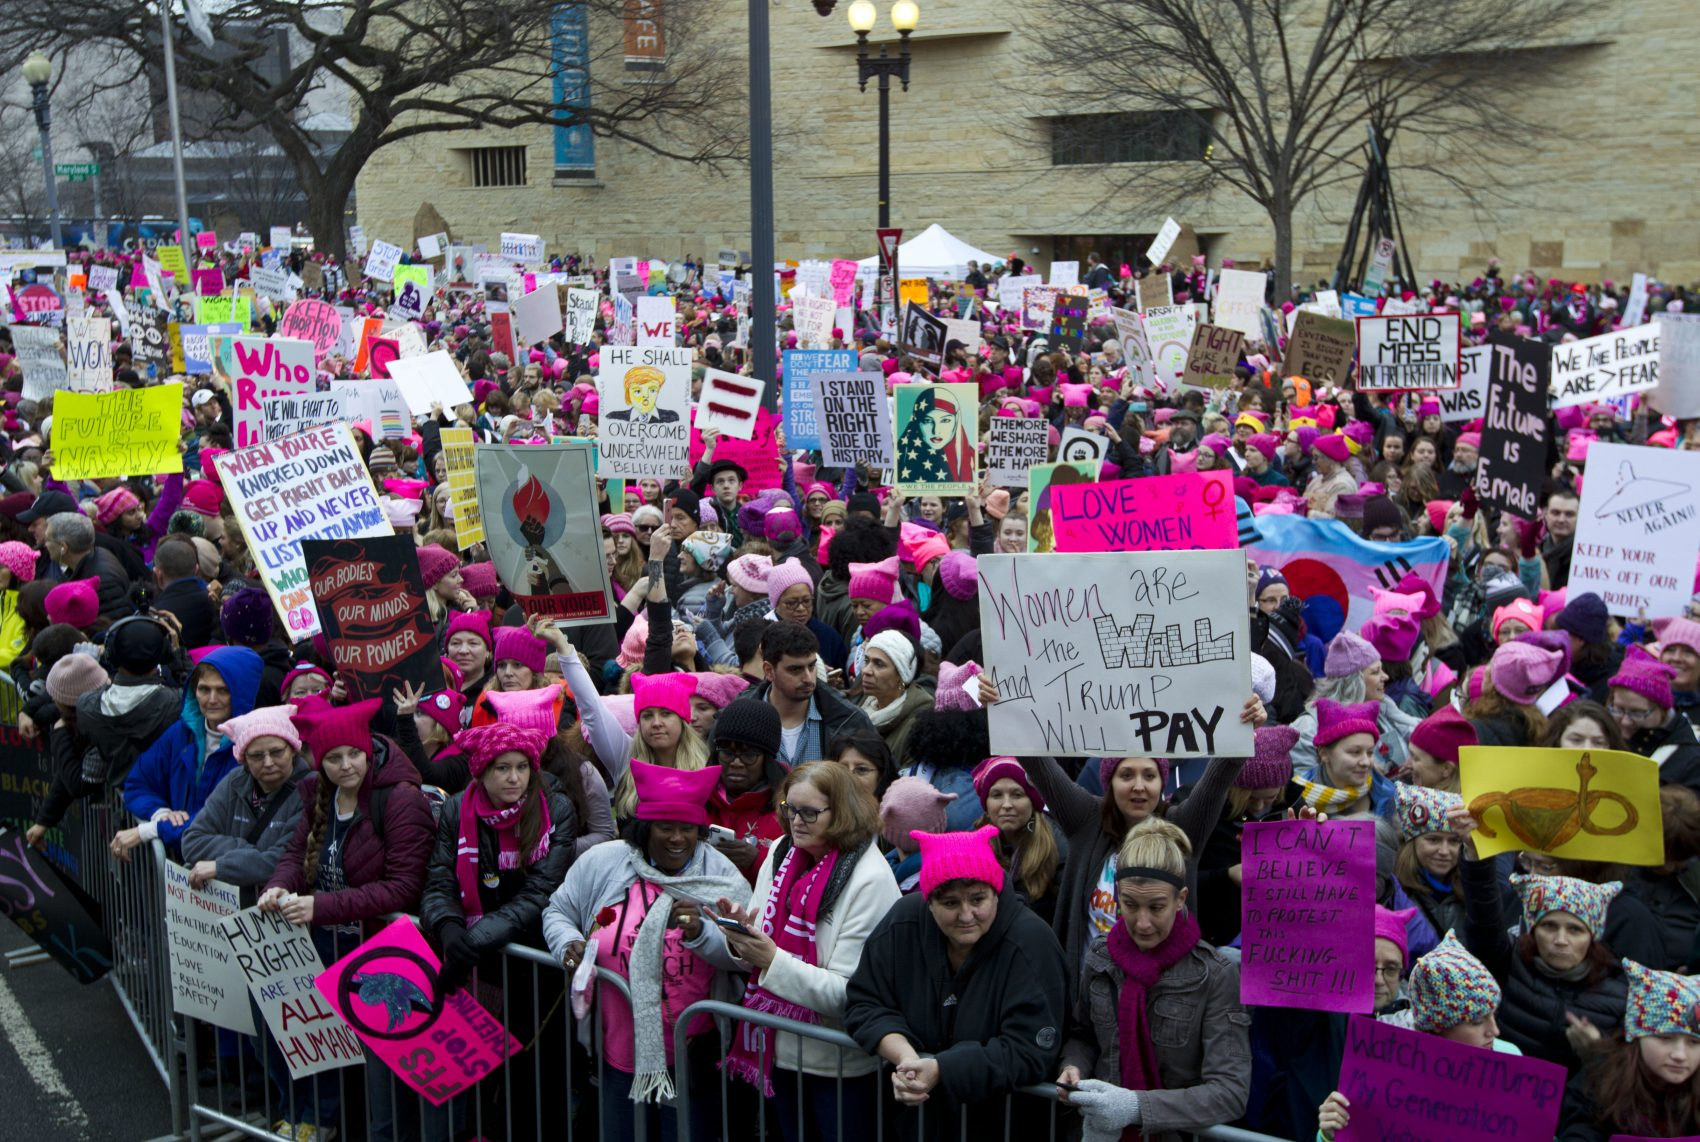 Women with bright pink hats and signs gathered in D.C. early on Saturday. (Jose Luis Magana/AP)